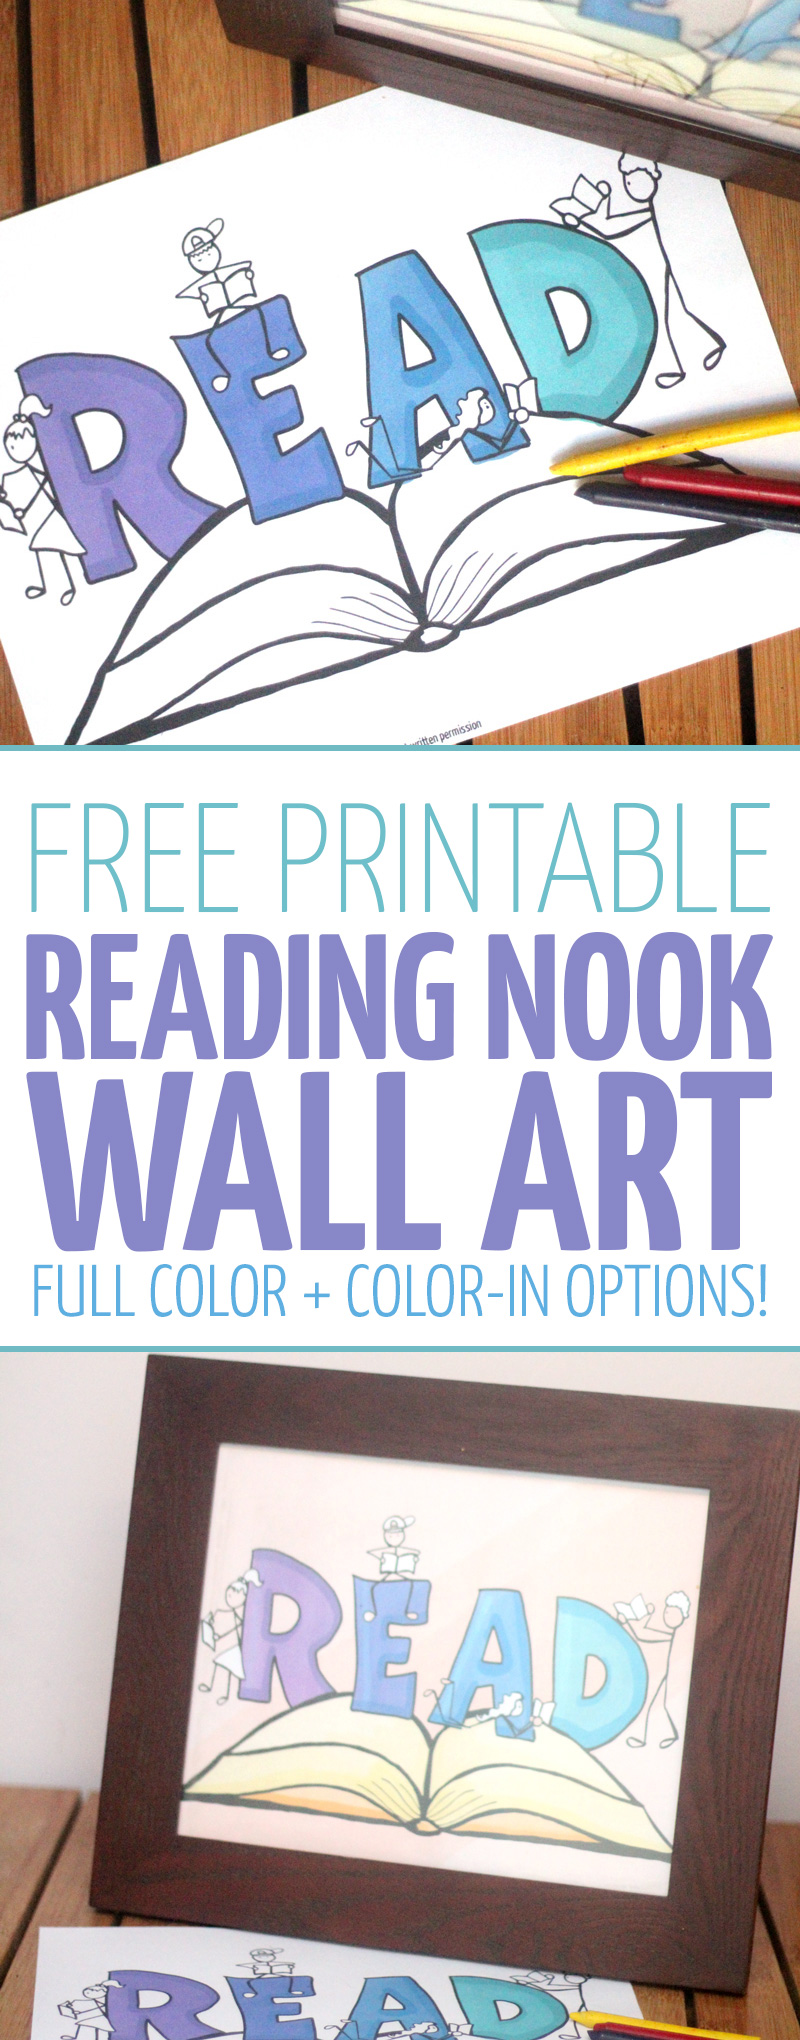 Free printable reading nook wall art: Full Color or color-in version! You'll love this cool reading nook idea - it's a fun way to involve the kids! Plus, click to learn how you can encourage literacy and reading in kids by letting them choose their own FREE books! This book coloring page for kids (or even adults can color it) is a fun kids literacy activity. The full color version makes an amazing poster for a reading corner, playroom, or kids room!